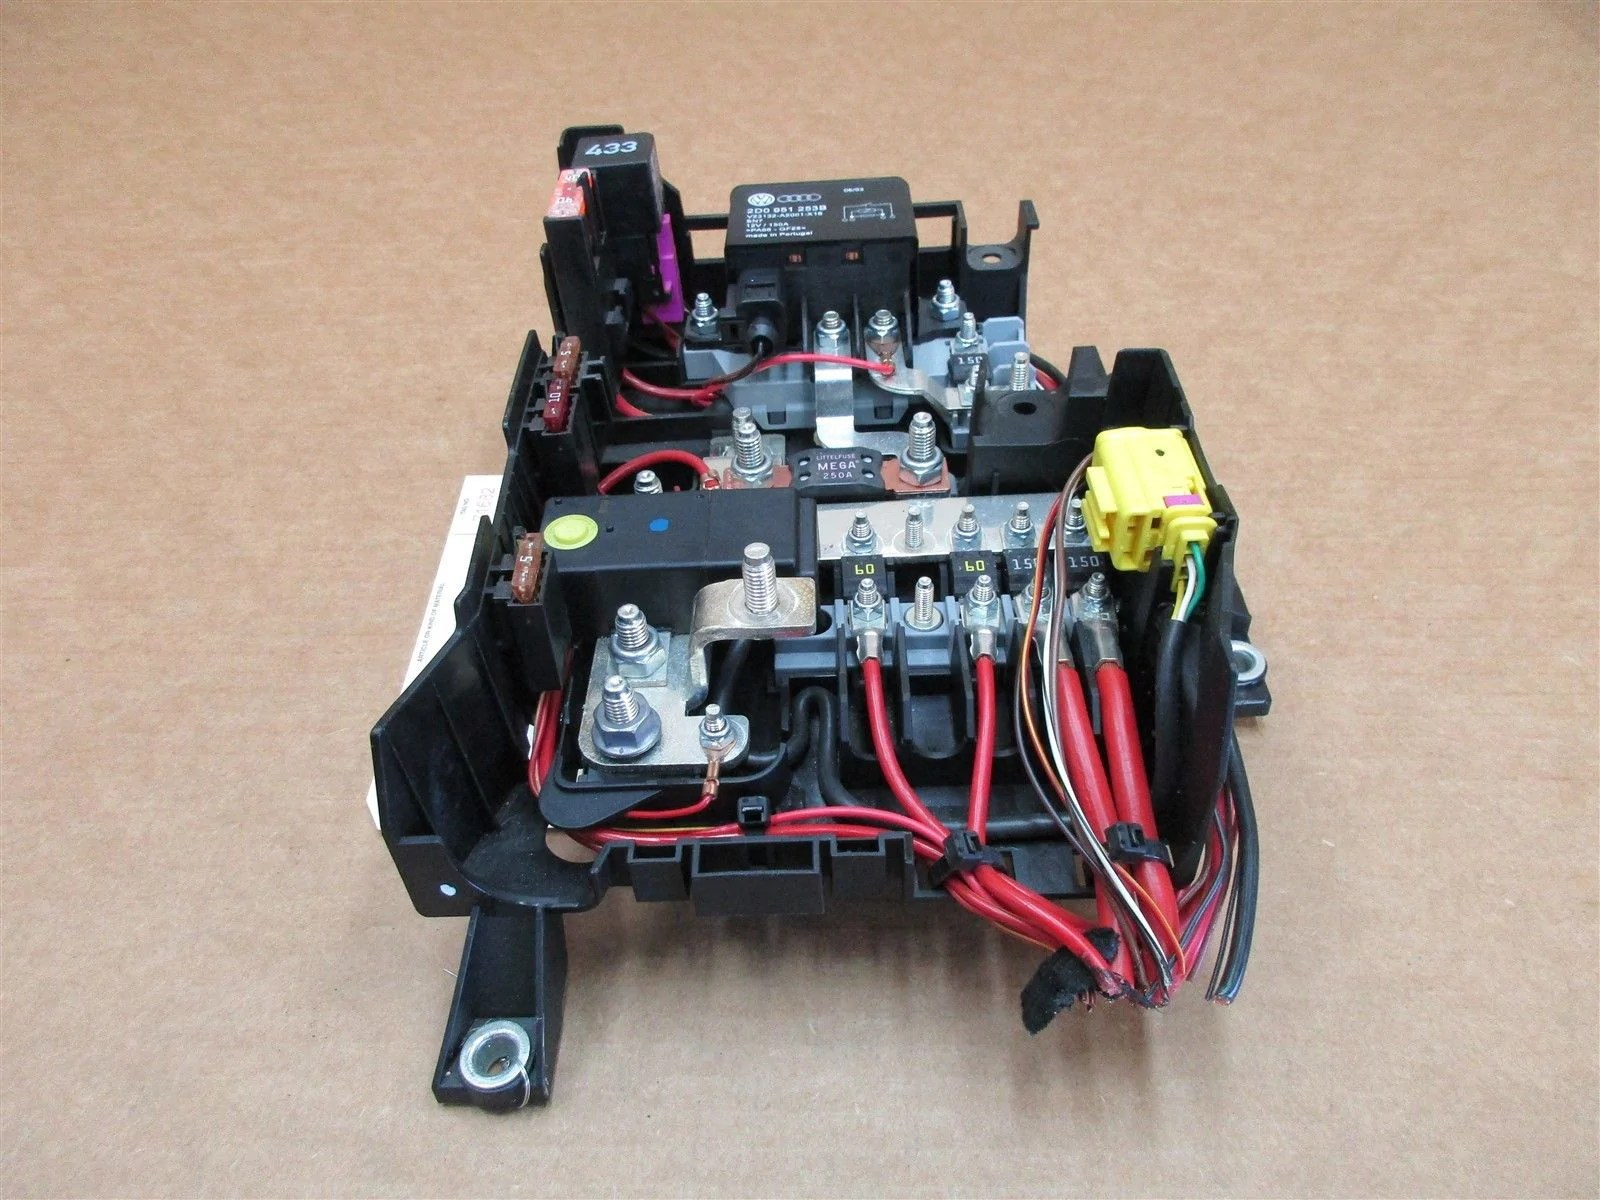 hight resolution of 04 cayenne turbo awd porsche 955 fuse box relay 7l0937548a 2d0951253b 88 808